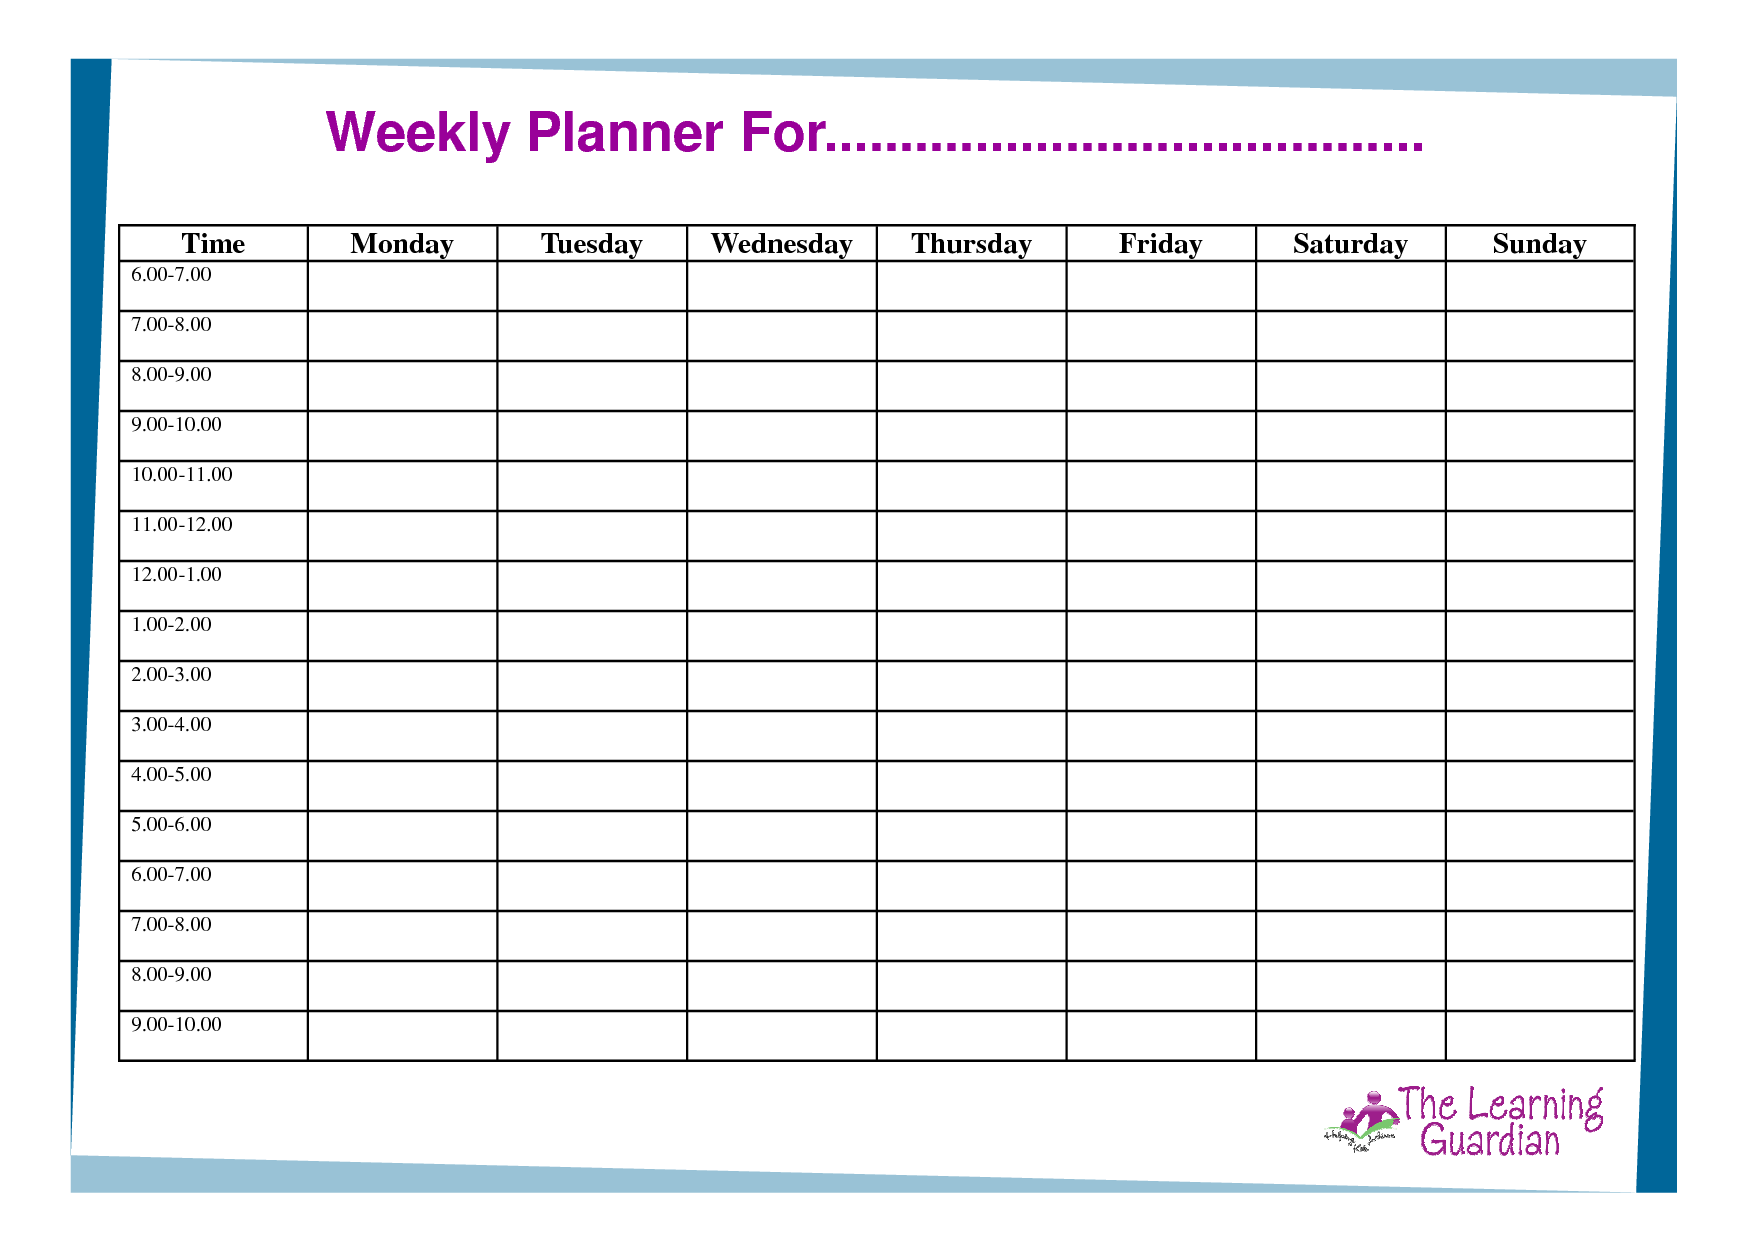 Good Free Printable Weekly Calendar Templates | Weekly Planner For Time Monday  Tuesday Wednesday Thursday Friday And Free Daily Calendar Template With Times